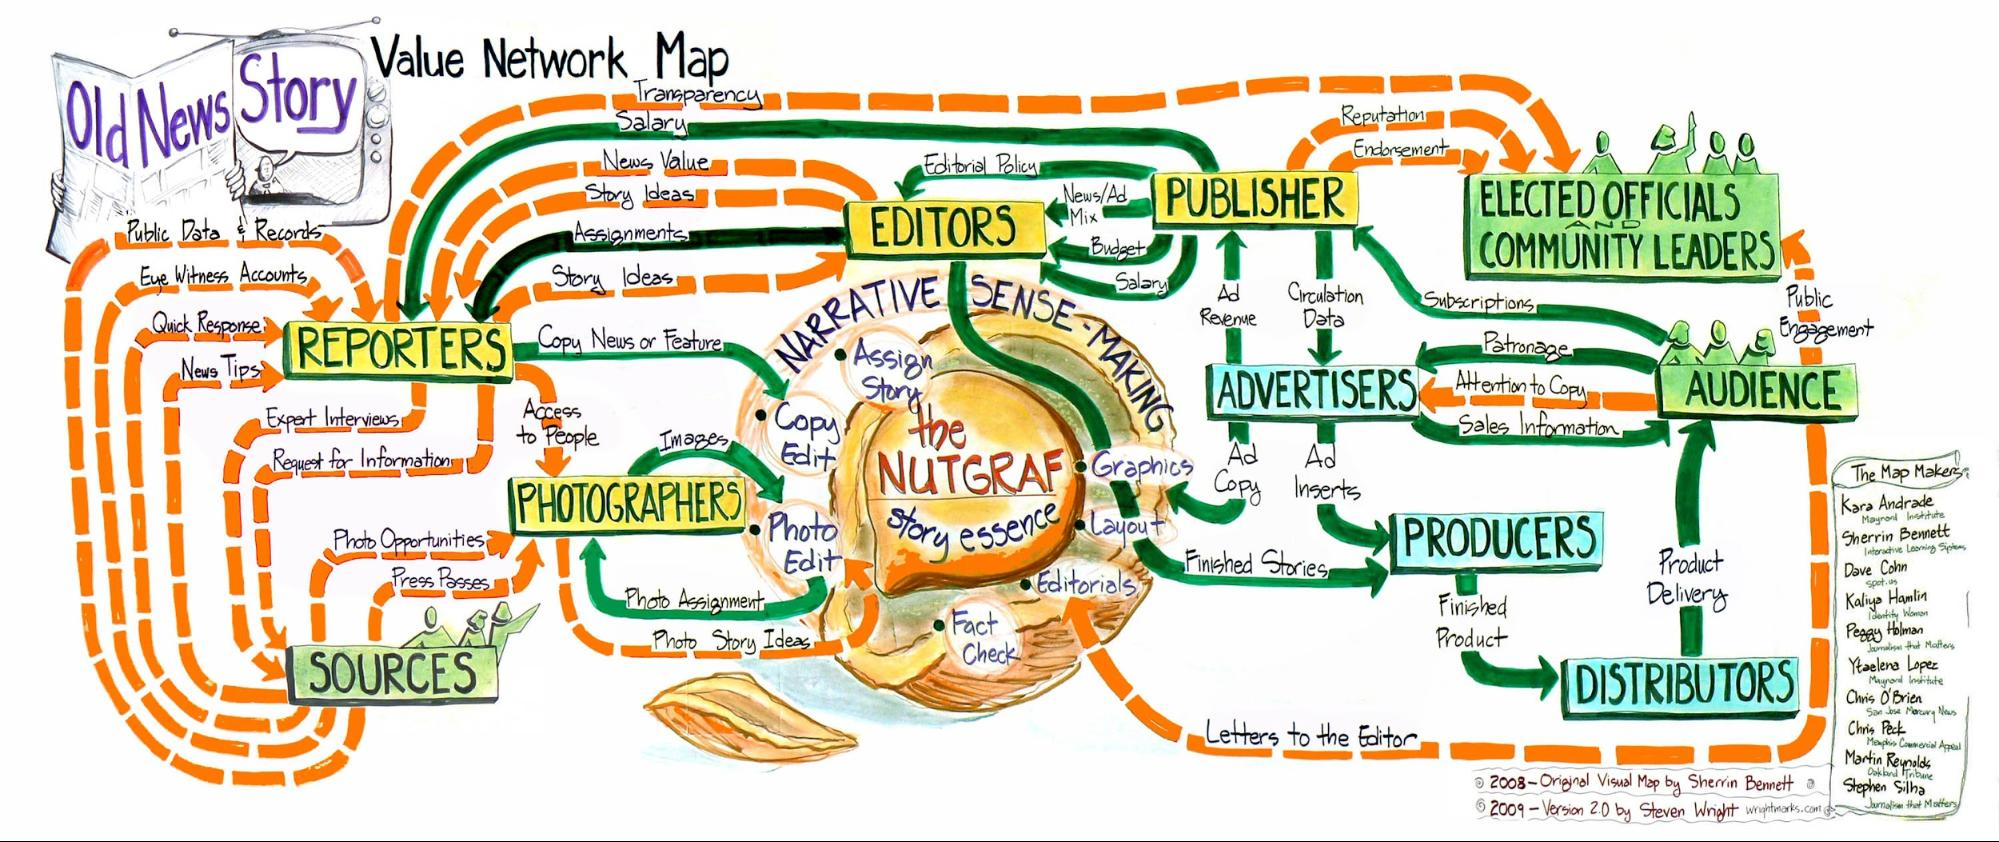 The Journalism That Matters JTM value network map depicts the old news story—with reporters, sources, photographers, editors, teams of related staffers and a publisher in narrative sense-making, in a product that had advertisers and was distributed to an audience that includes community leaders and elected officials.